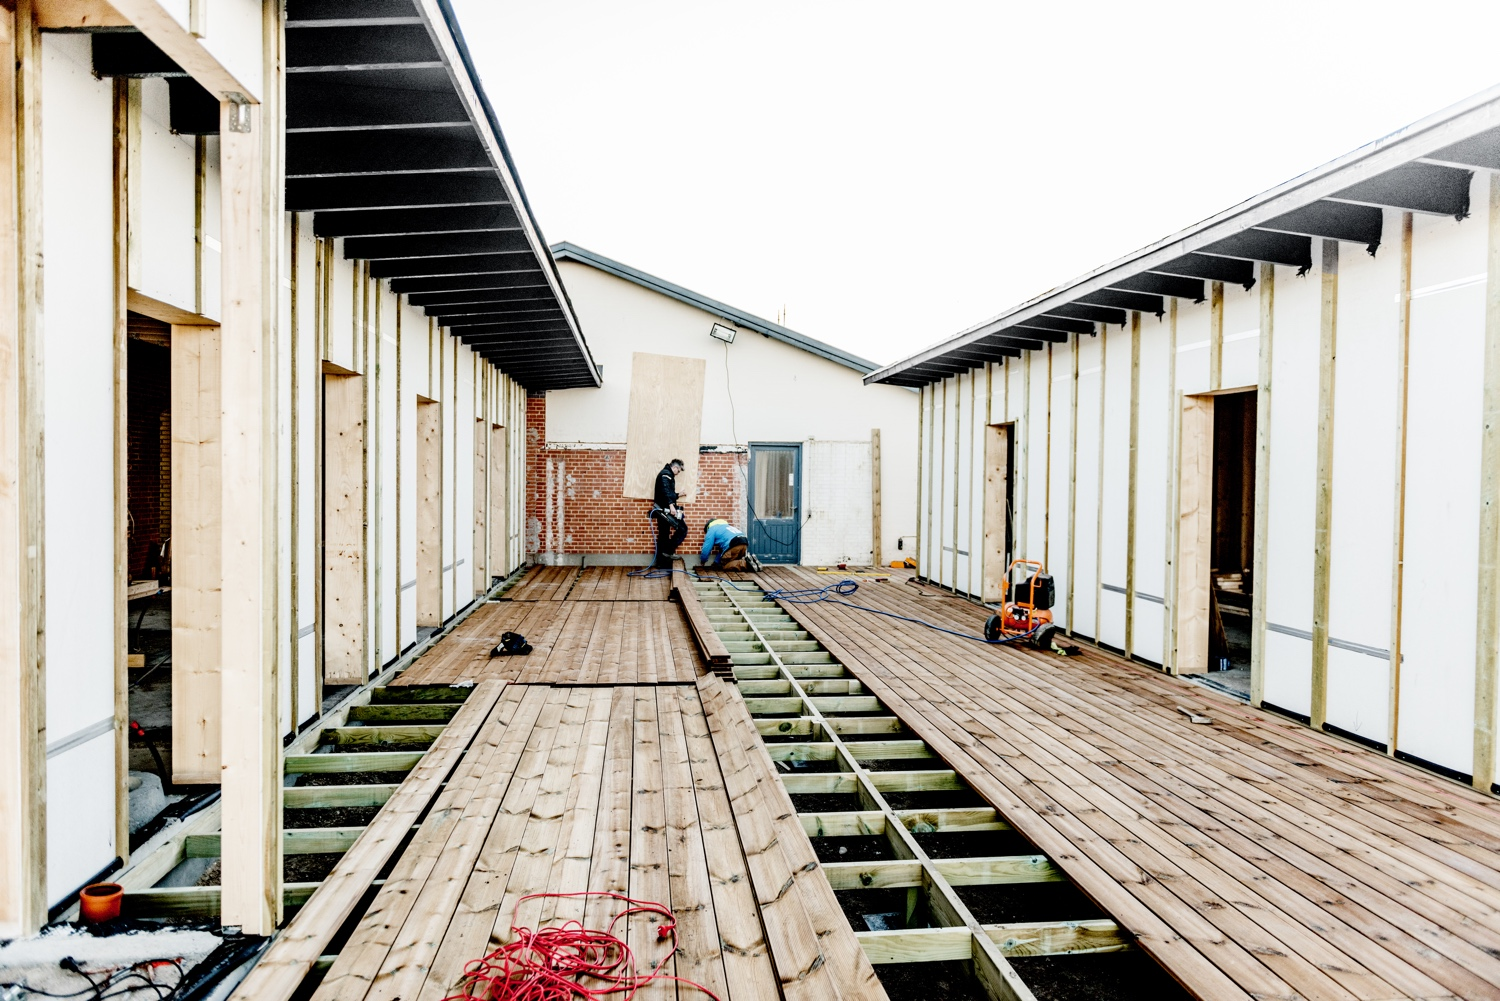 Decking-the-new-terrace_Ørhagevej-84.jpg